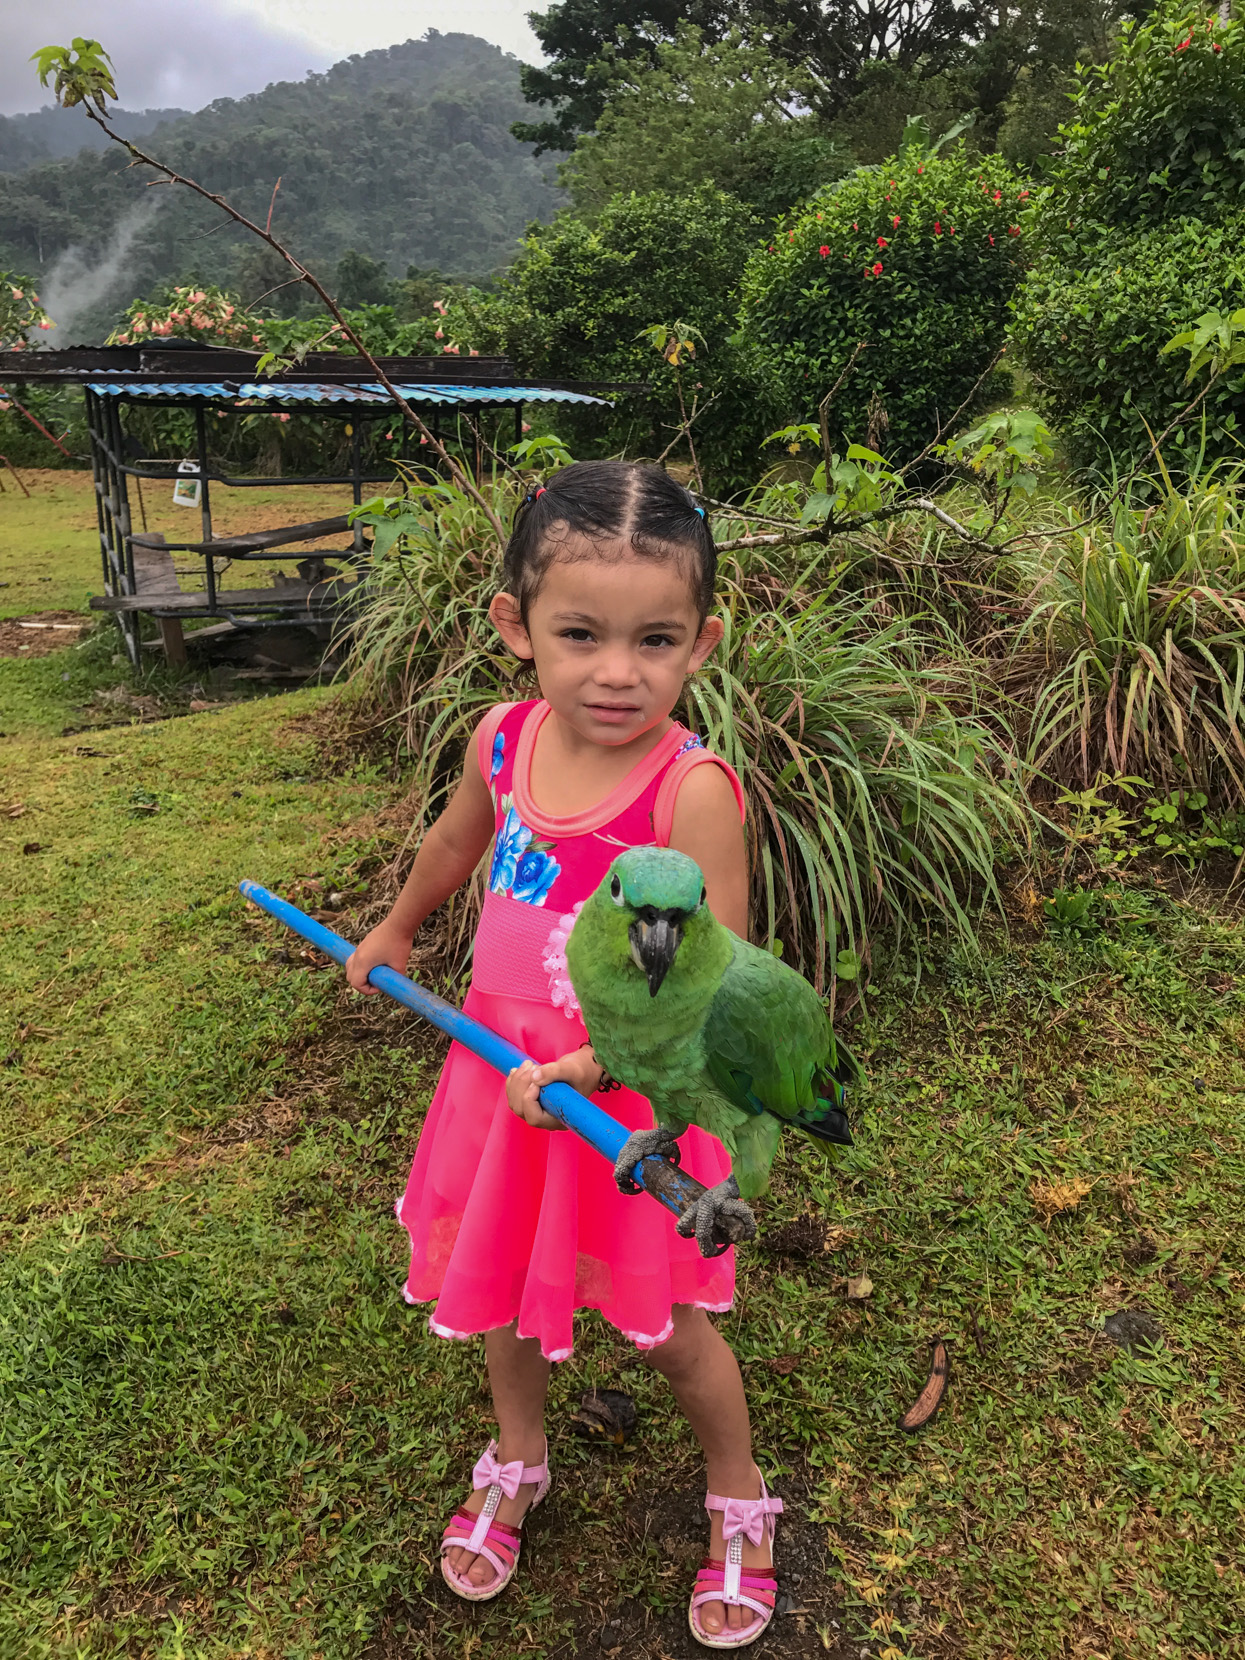 Our family costa rican adventure a stay at a farm near arenal